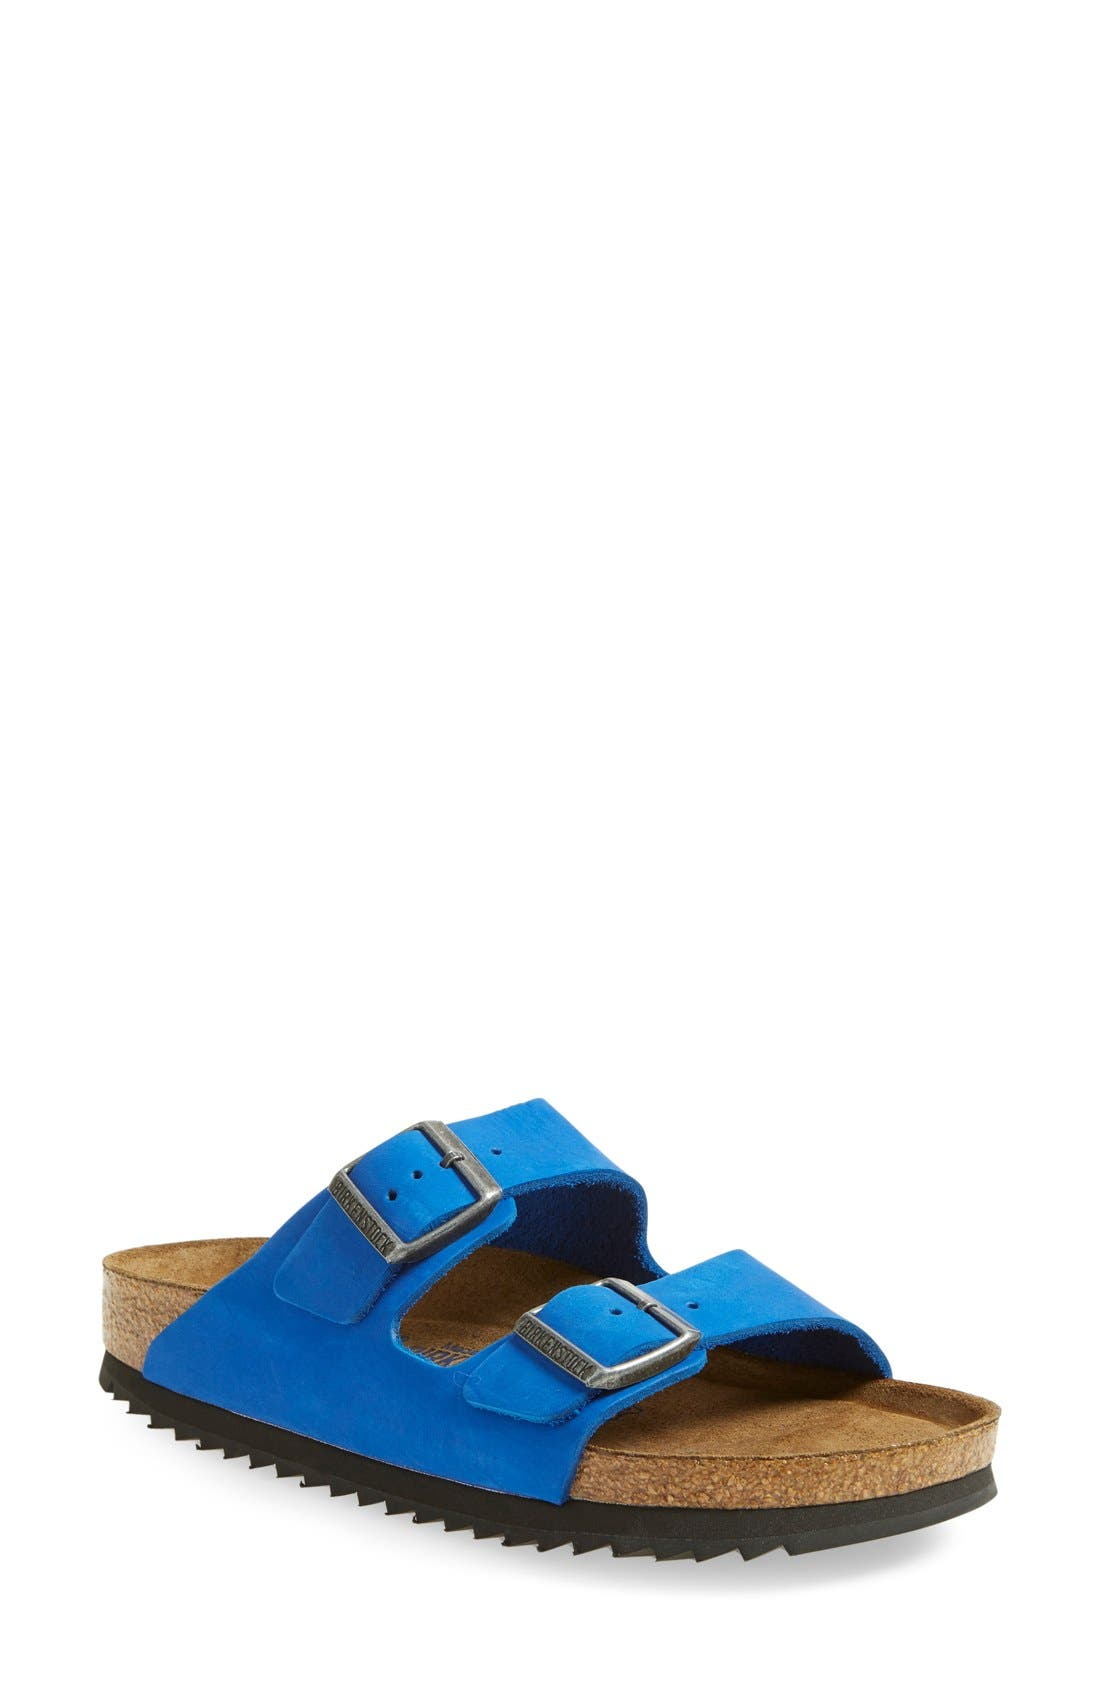 Main Image - Birkenstock 'Arizona' Sandal (Women)